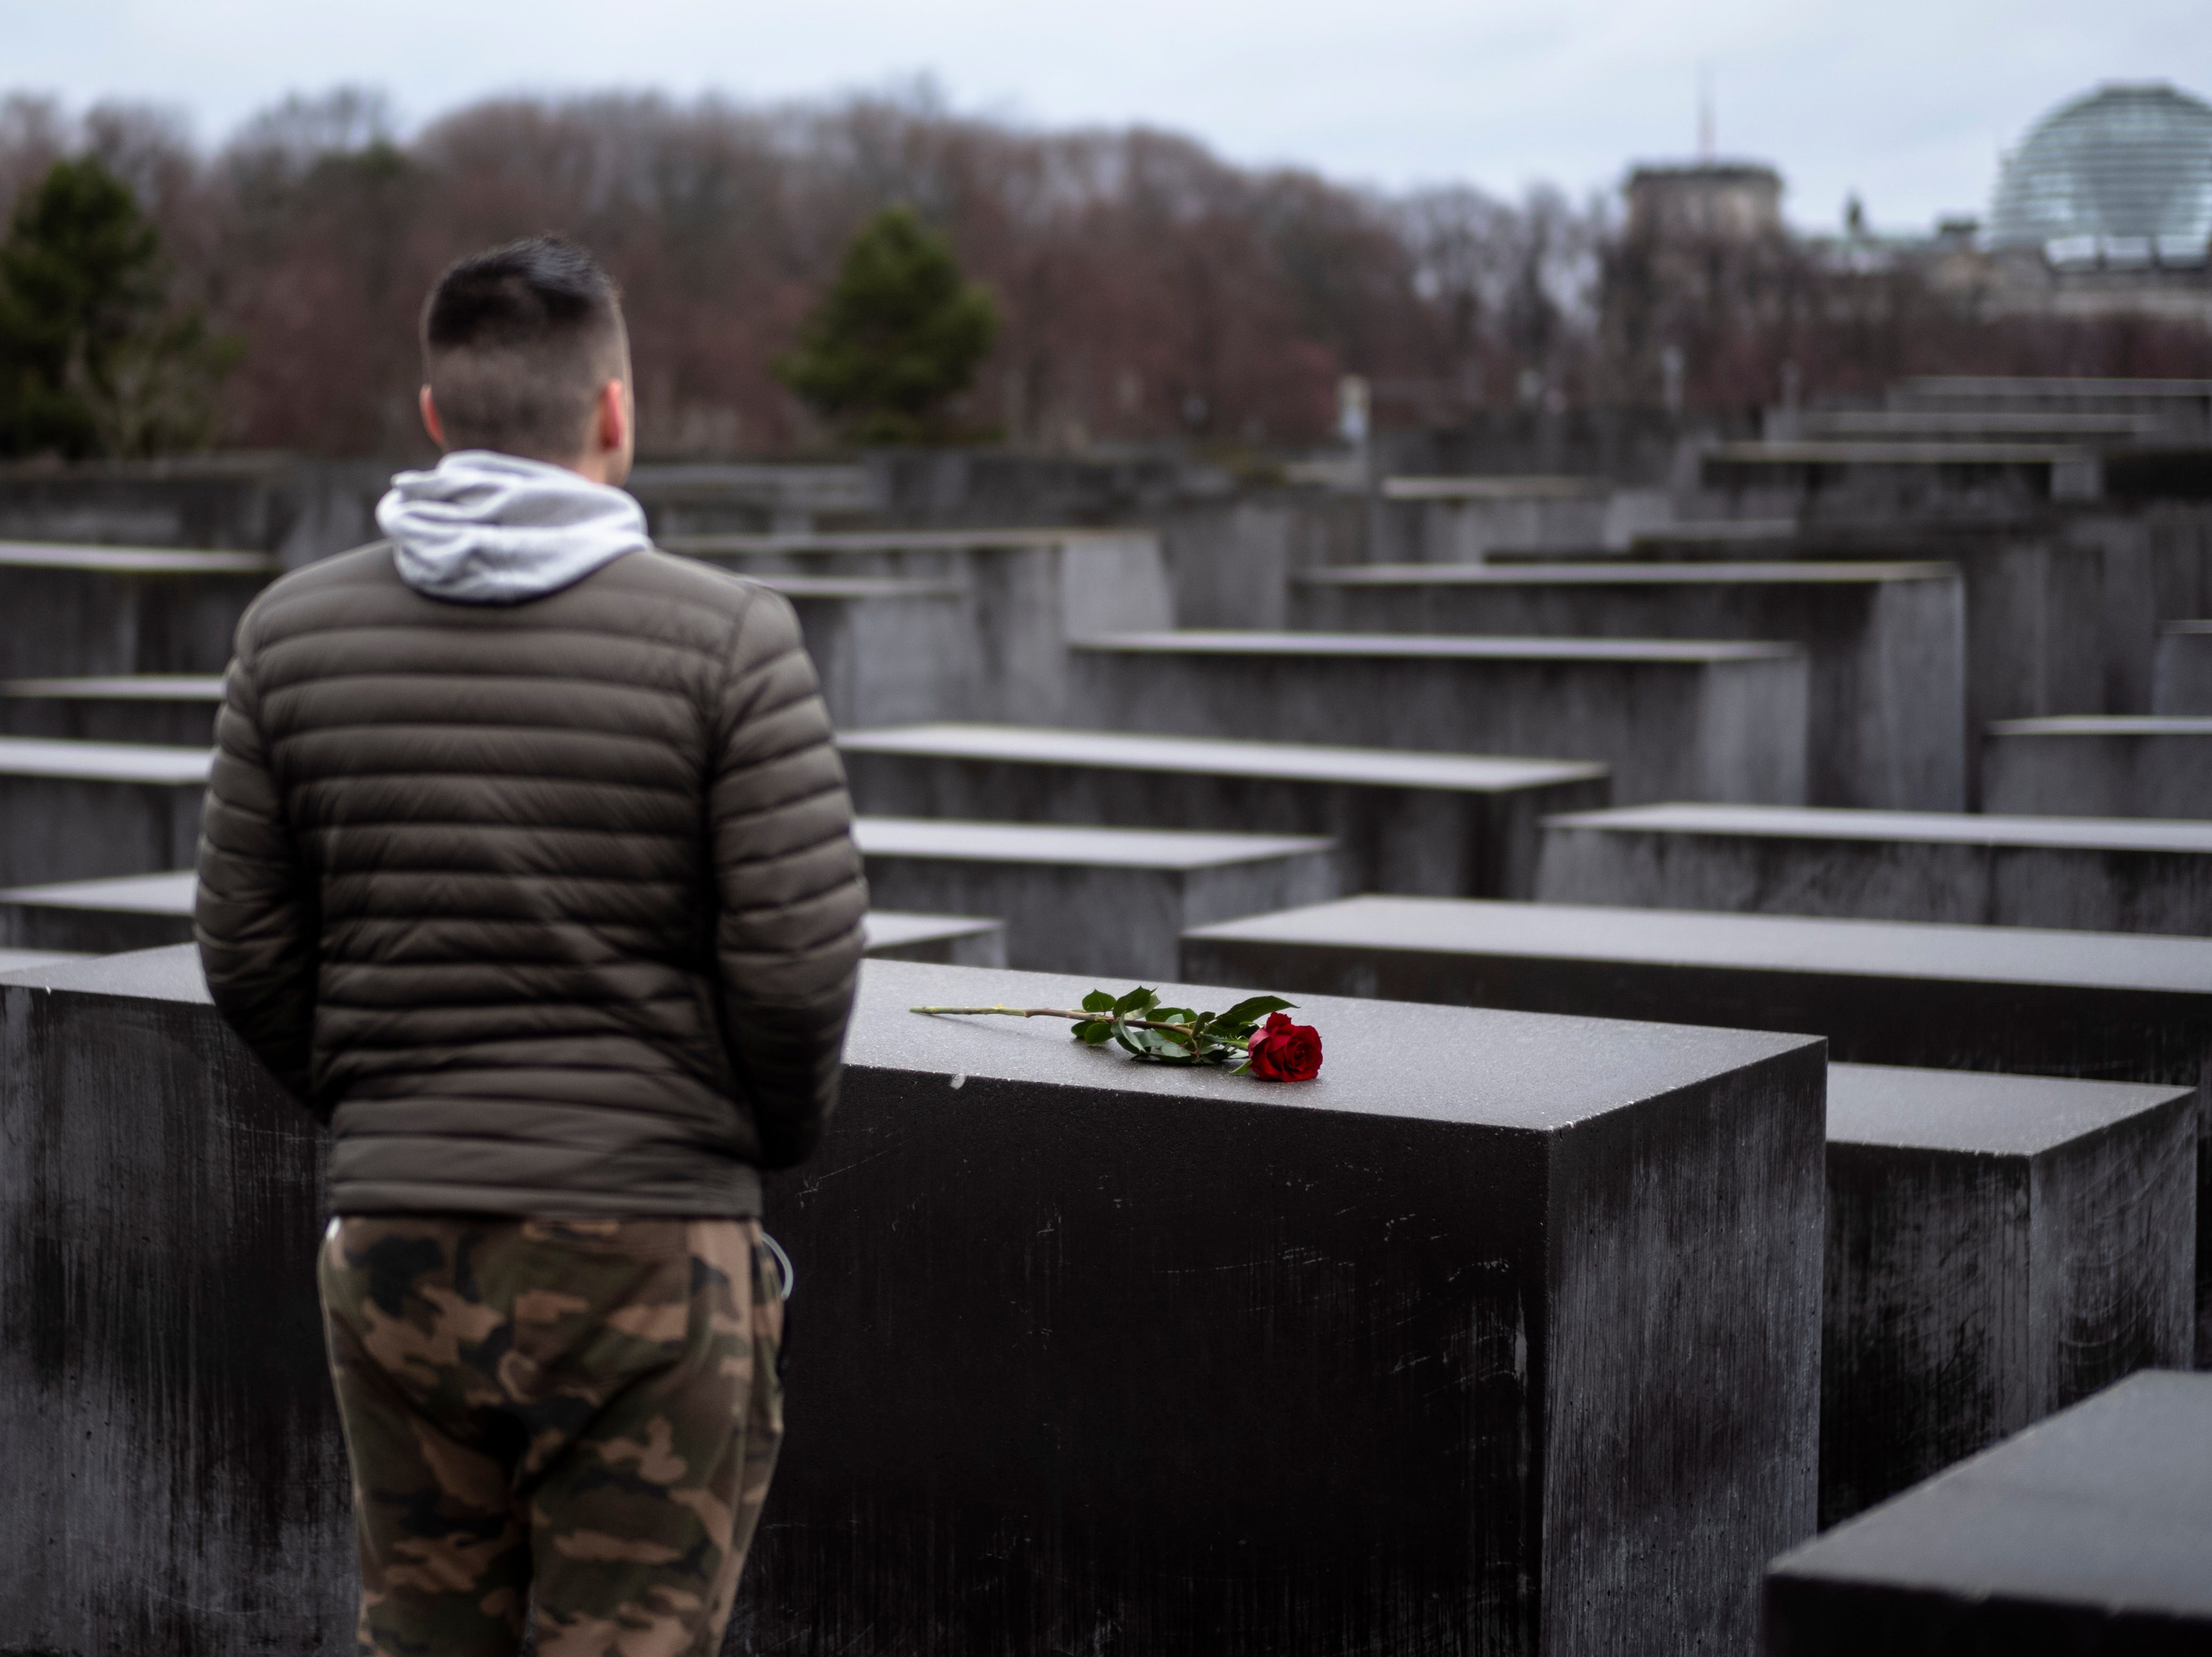 A young man stands in front of the Holocaust Memorial after he laid down a red rose on a slab of the memorial to commemorate the victims of the Nazis in Berlin, Sunday, Jan. 27, 2019. The International Holocaust Remembrance Day marks the liberation of the Auschwitz Nazi death camp on Jan. 27, 1945.